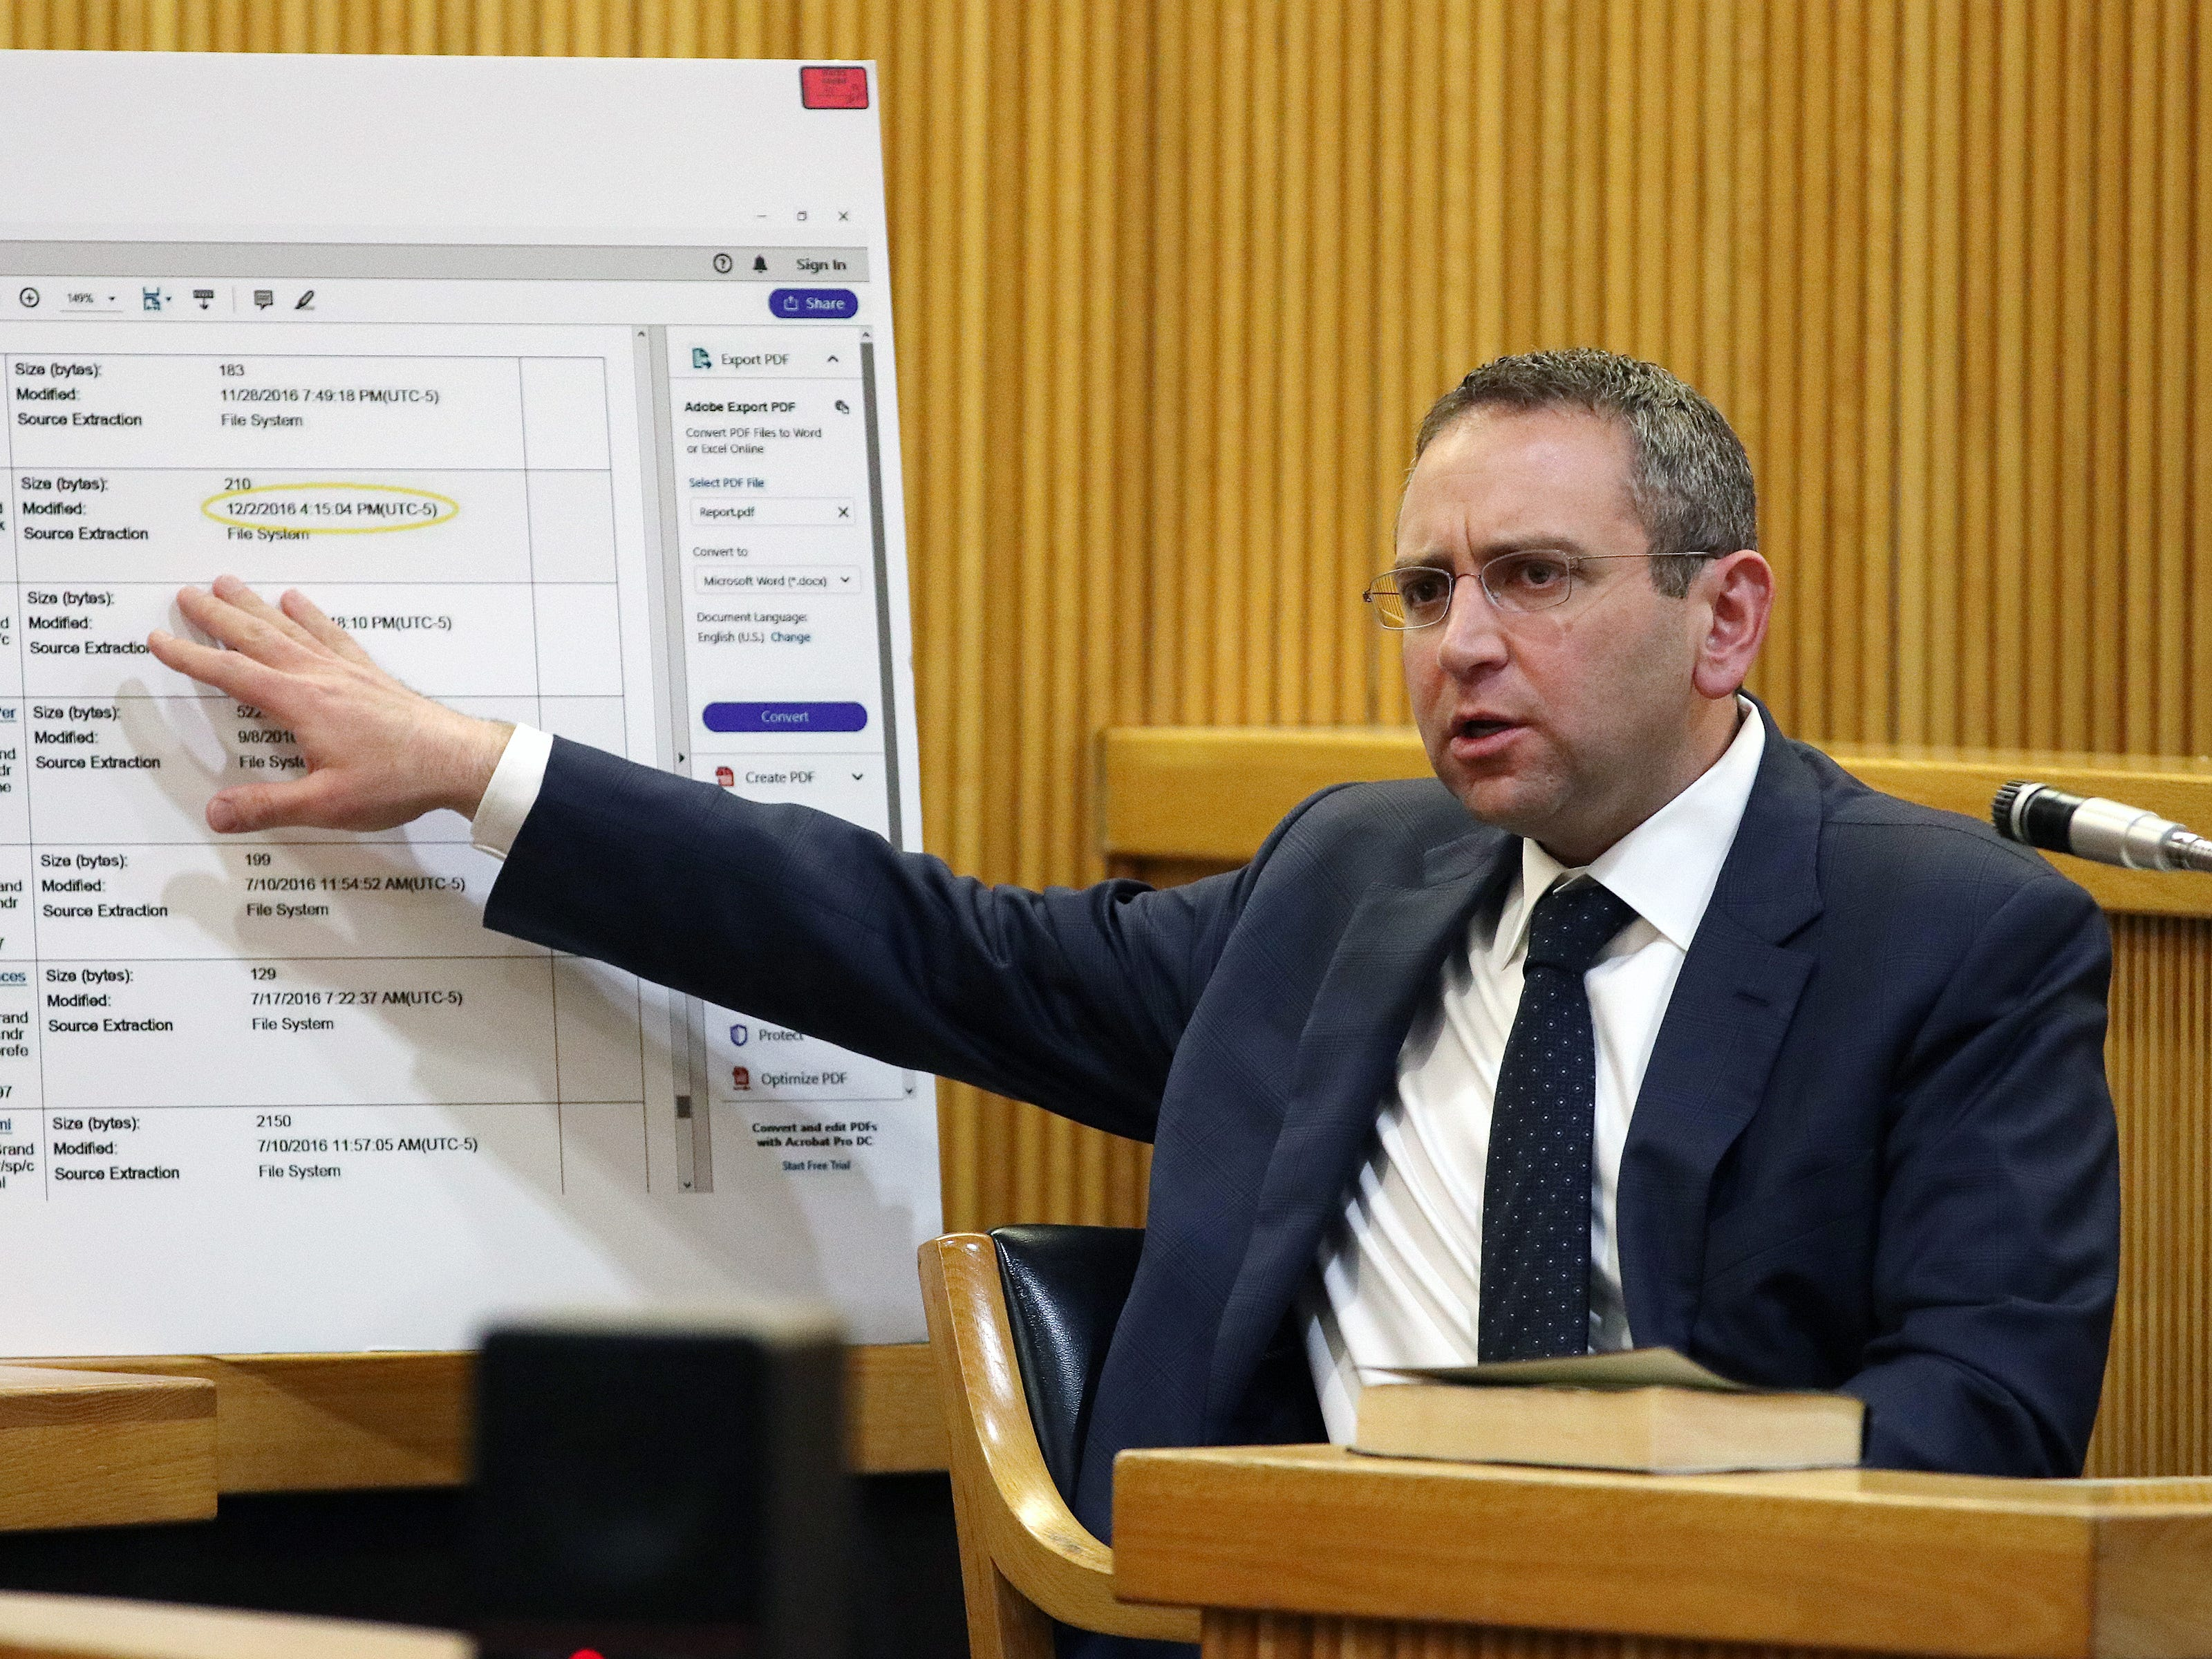 Detective Brian Weisbrot of the Monmouth County Prosecutor's Office, testifies during the trial of Liam McAtasney, who is charged with the murder of former high school classmate, Sarah Stern, before Superior Court Judge Richard W. English at the Monmouth County Courthouse in Freehold, NJ Thursday, February 14, 2019.